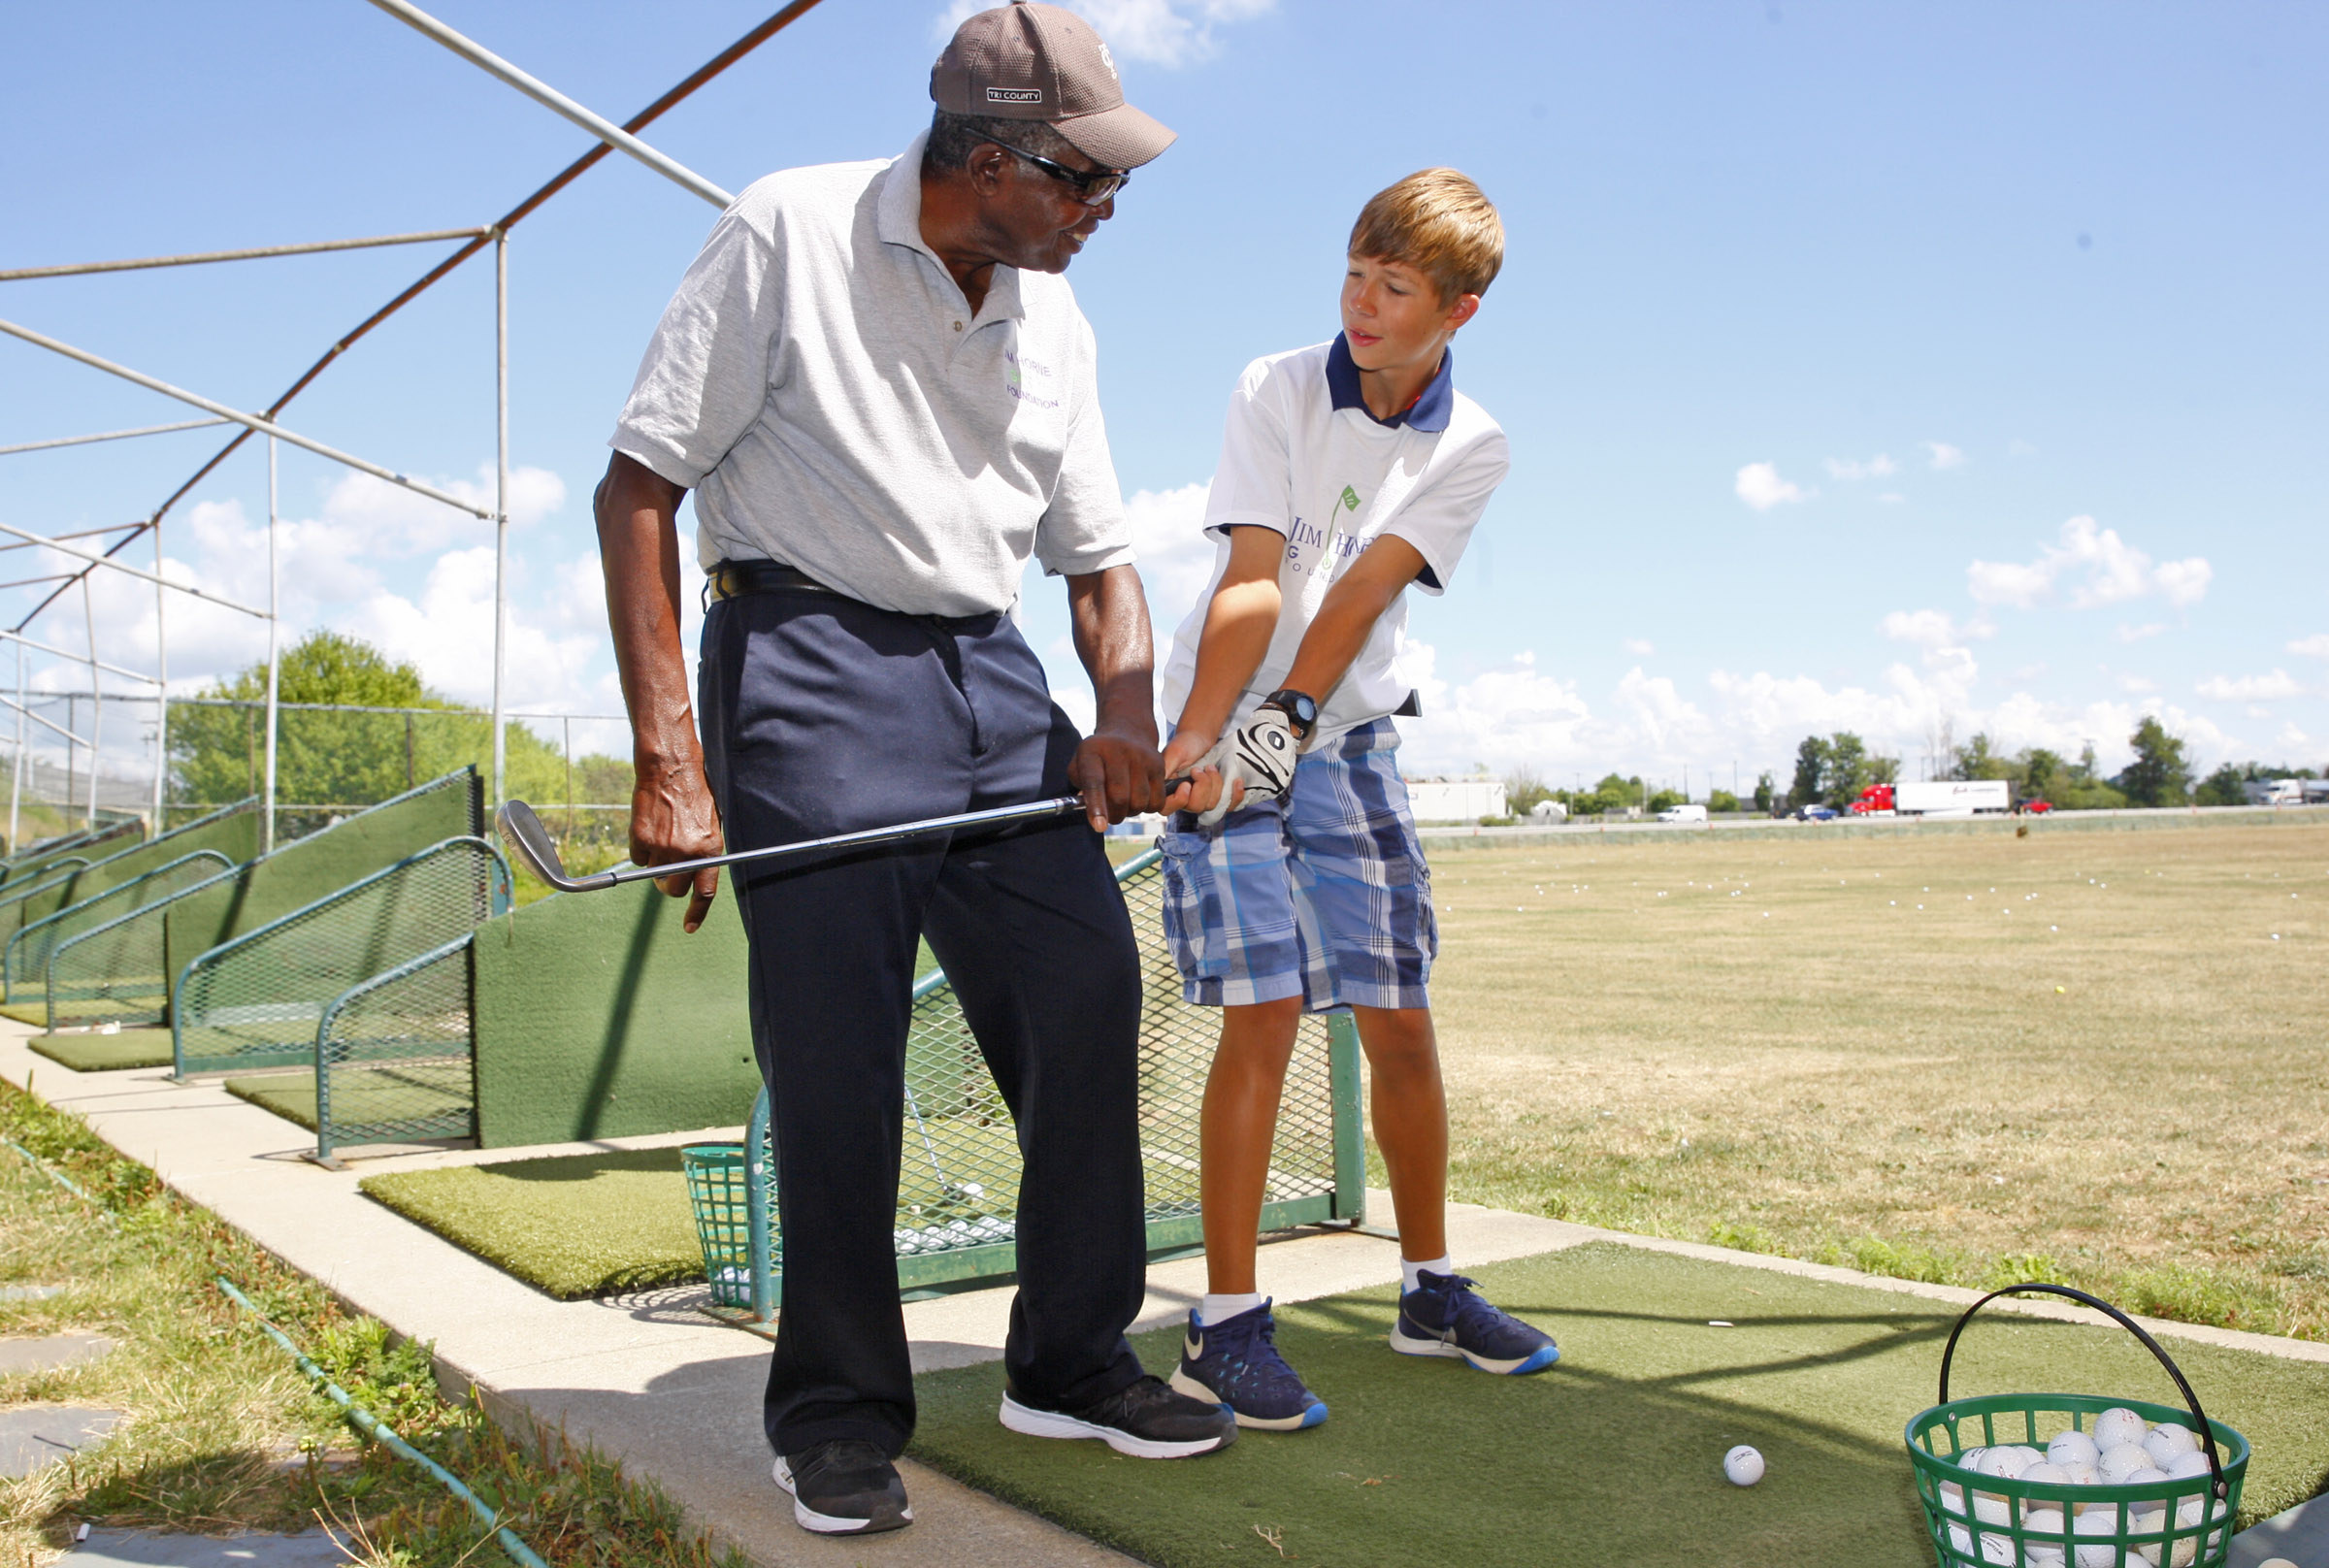 Jim Horne is an 84-year-old former UB basketball player and Harlem Globetrotter gives free golf lessons to Dawson Miller at the Airport driving range on Wednesday, Aug. 3, 2016. (Harry Scull Jr./Buffalo News)